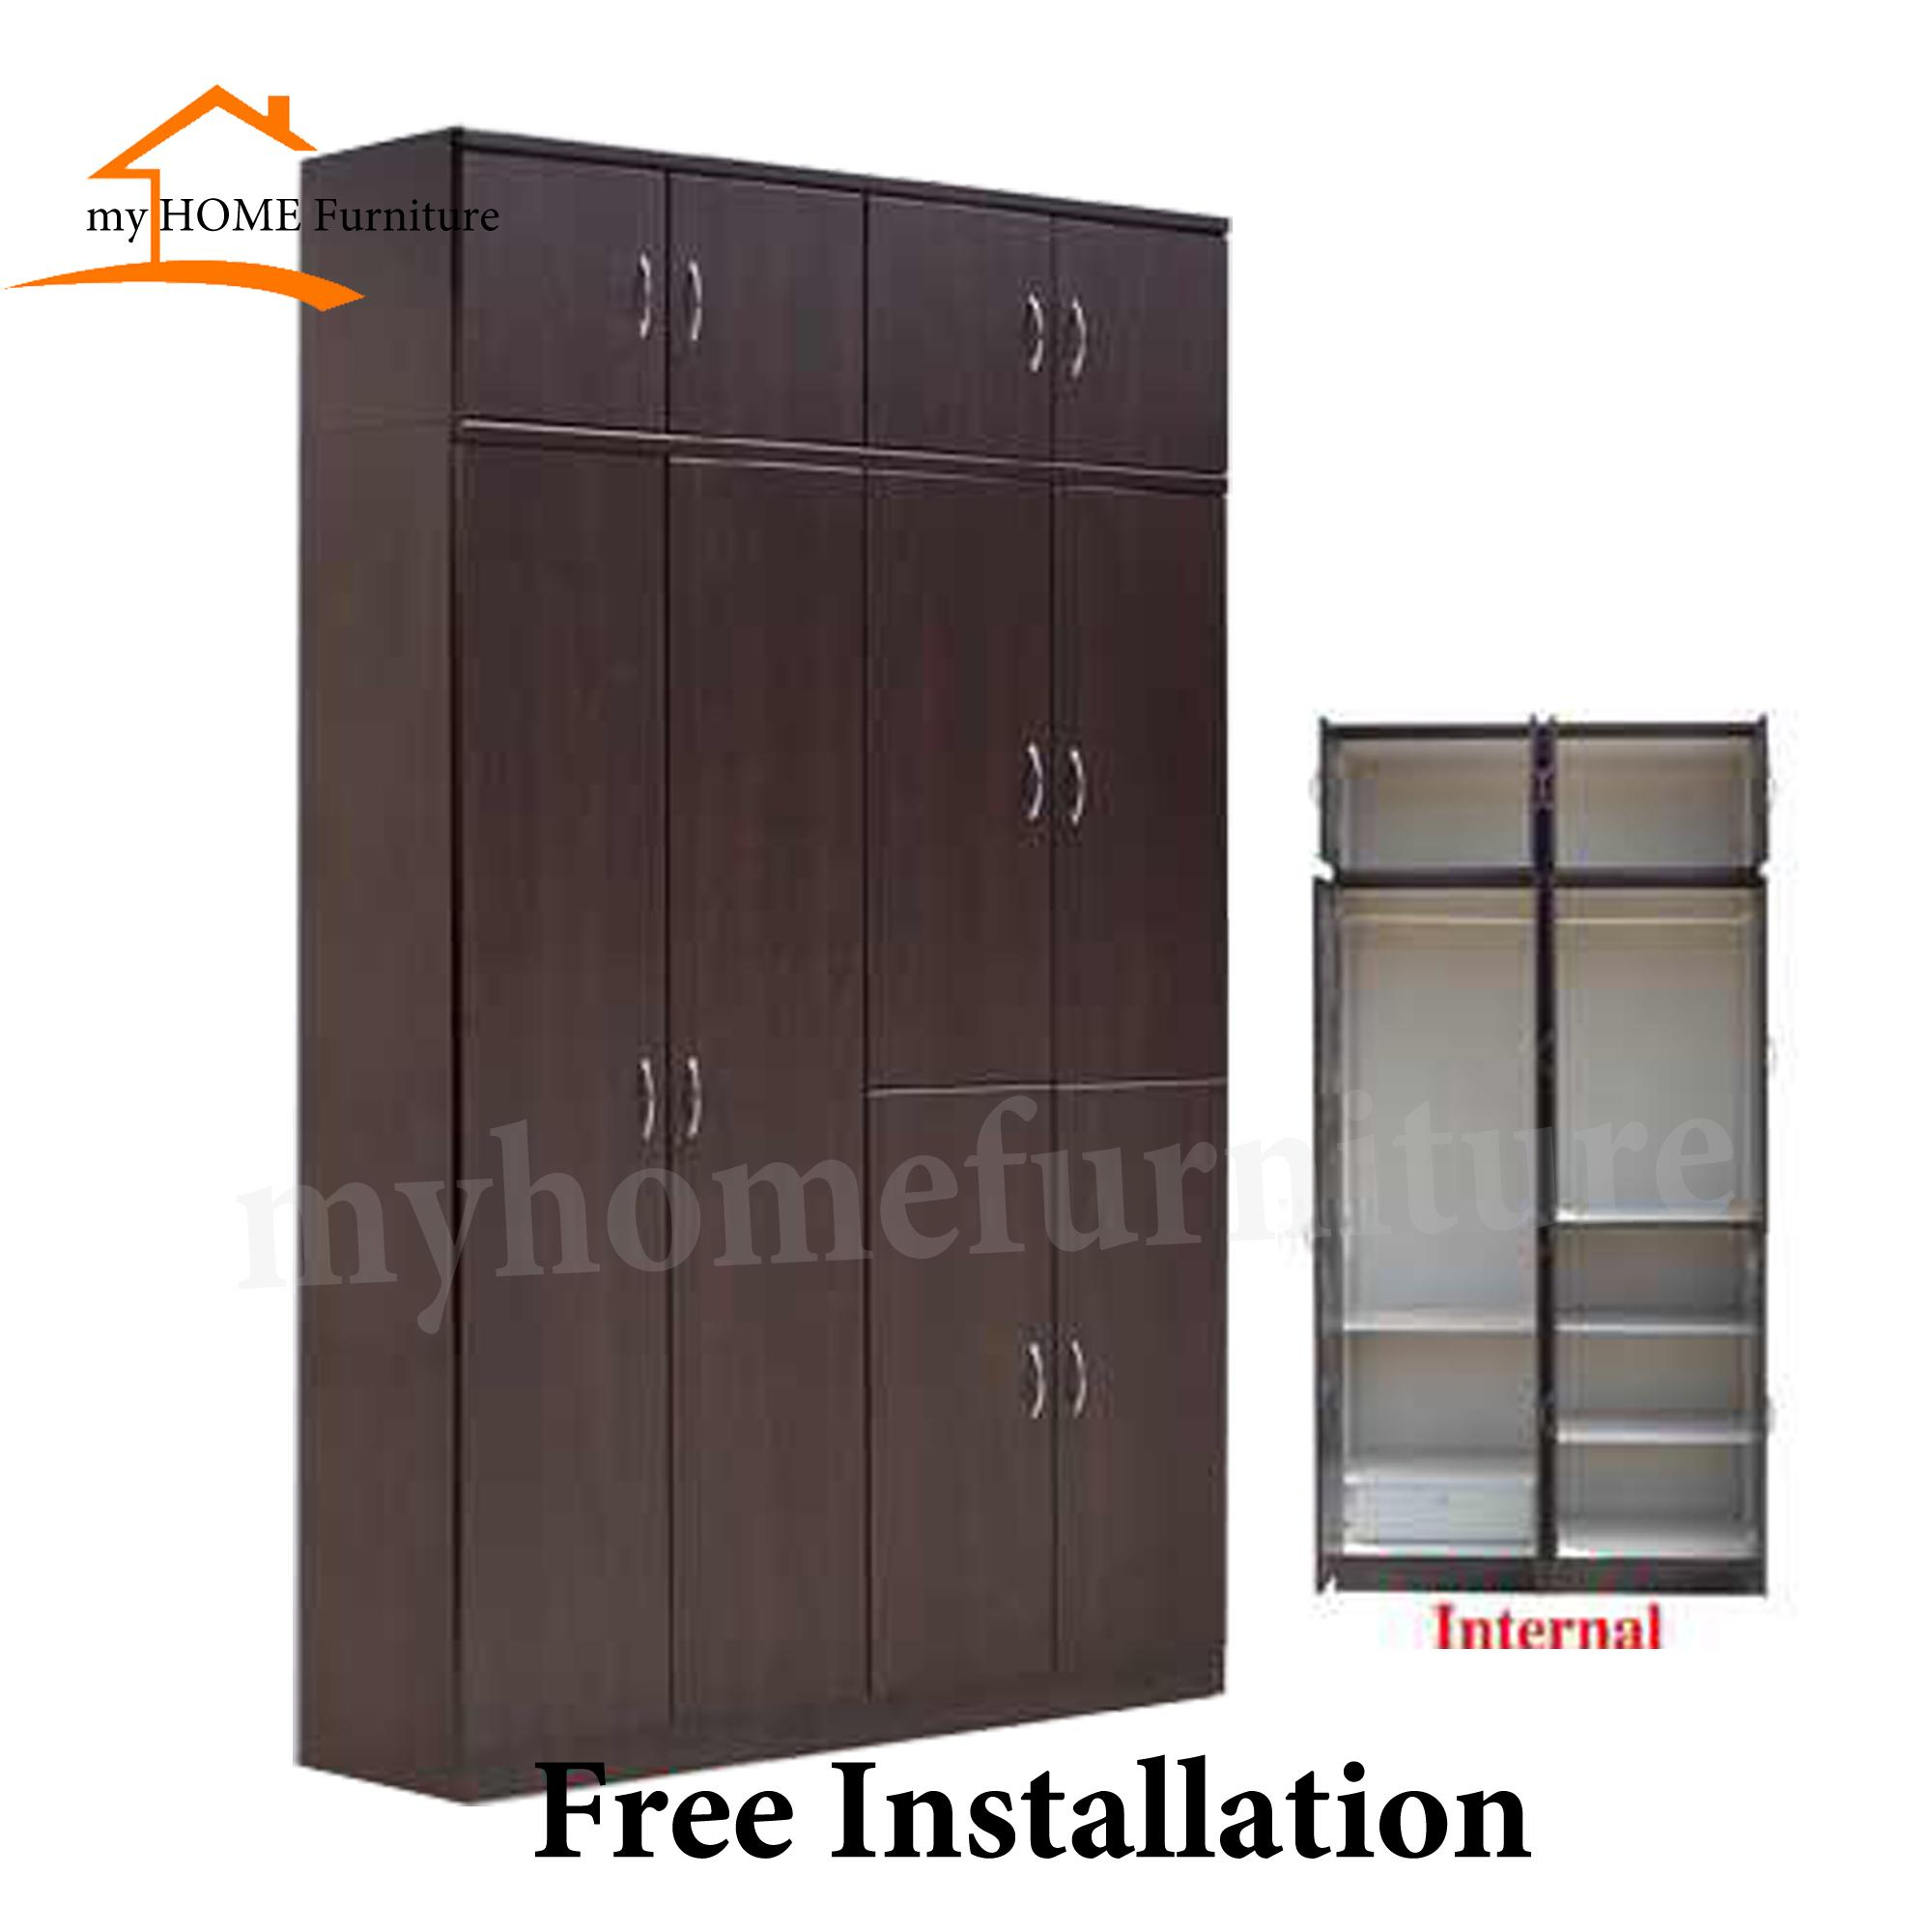 10 Doors Solid PlyWood Wardrobe (Free Delivery and Installation) (CHERRY COLOUR)